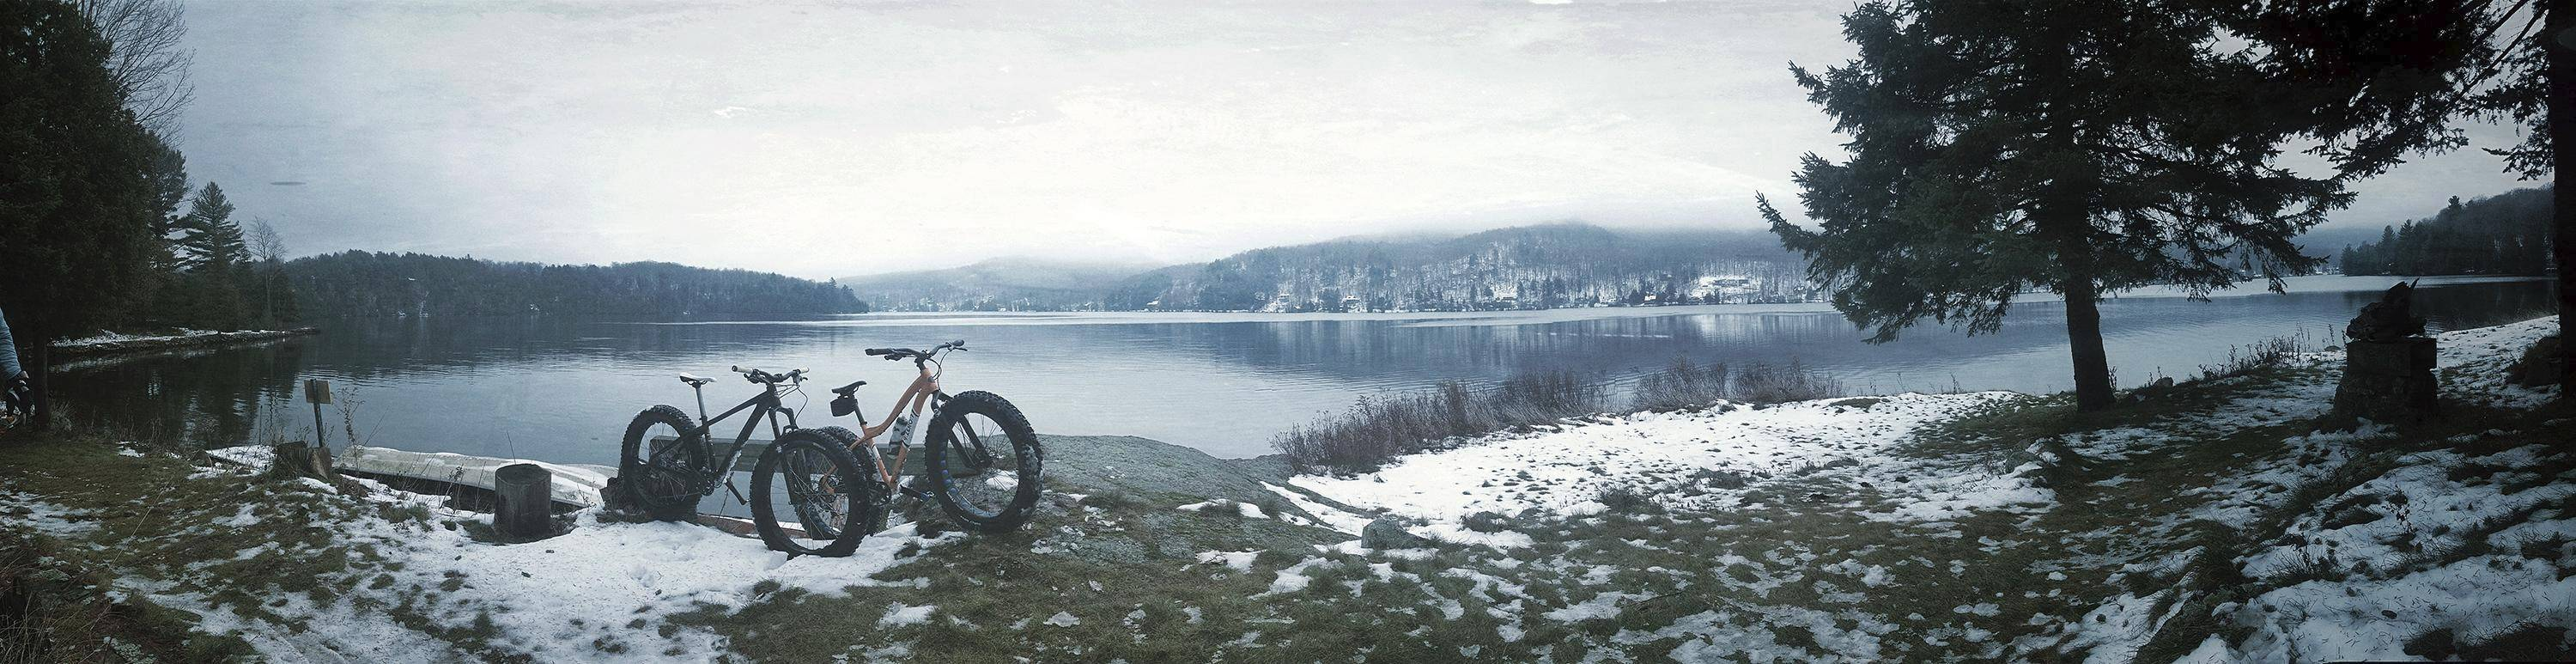 "A pair of ""fat bikes"" on the shore of Meech Lake in Quebec, Canada. The cycling industry has compared fat biking's rise in popularity with snowboarding's."